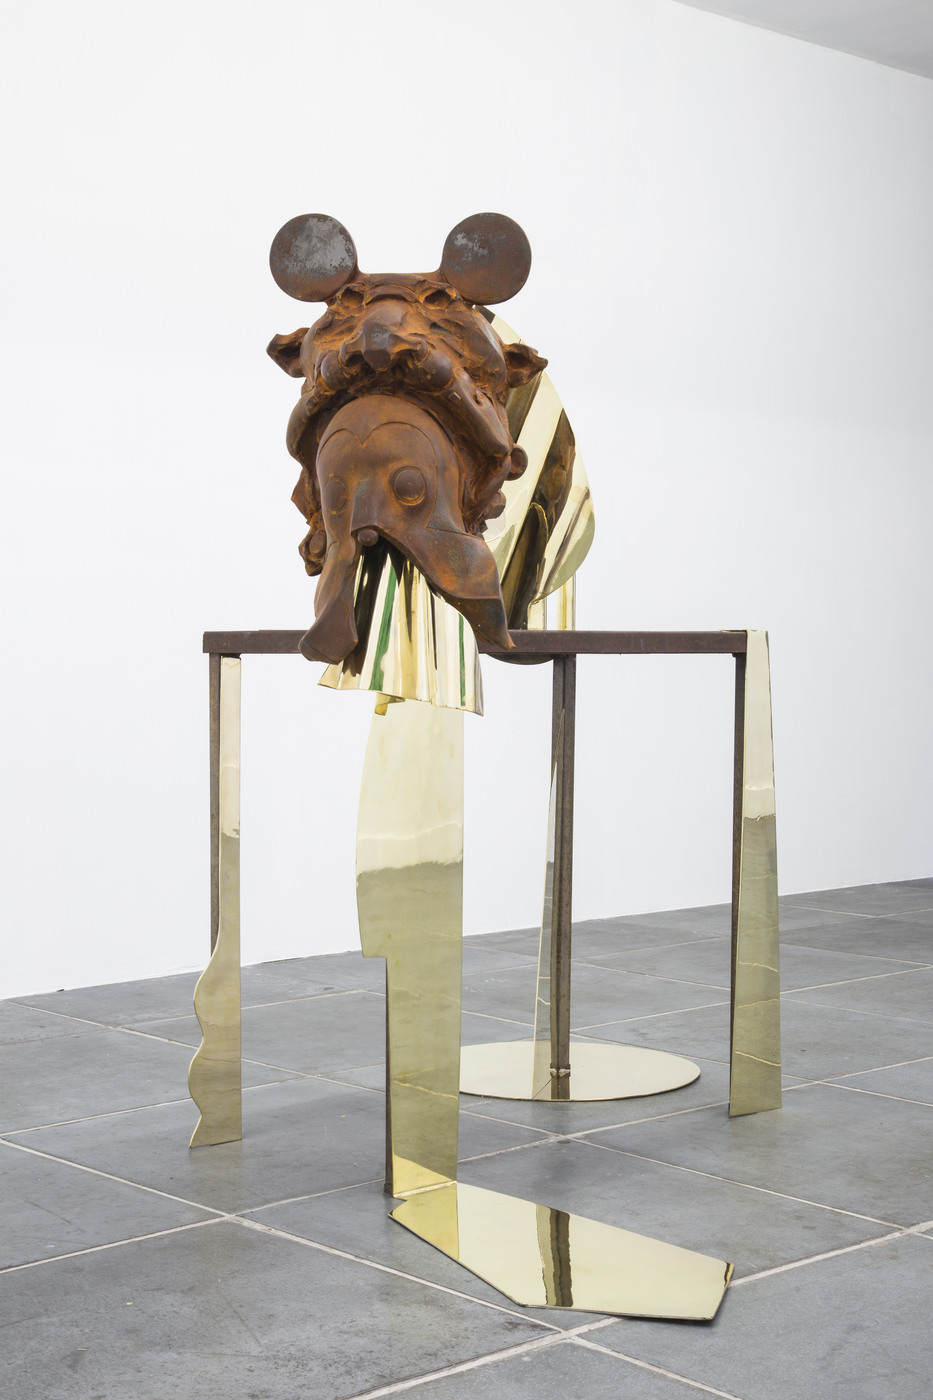 Nadia Naveau, Golden Age Banquet, 2016, cast iron, steel and copper, 130x116x132cm